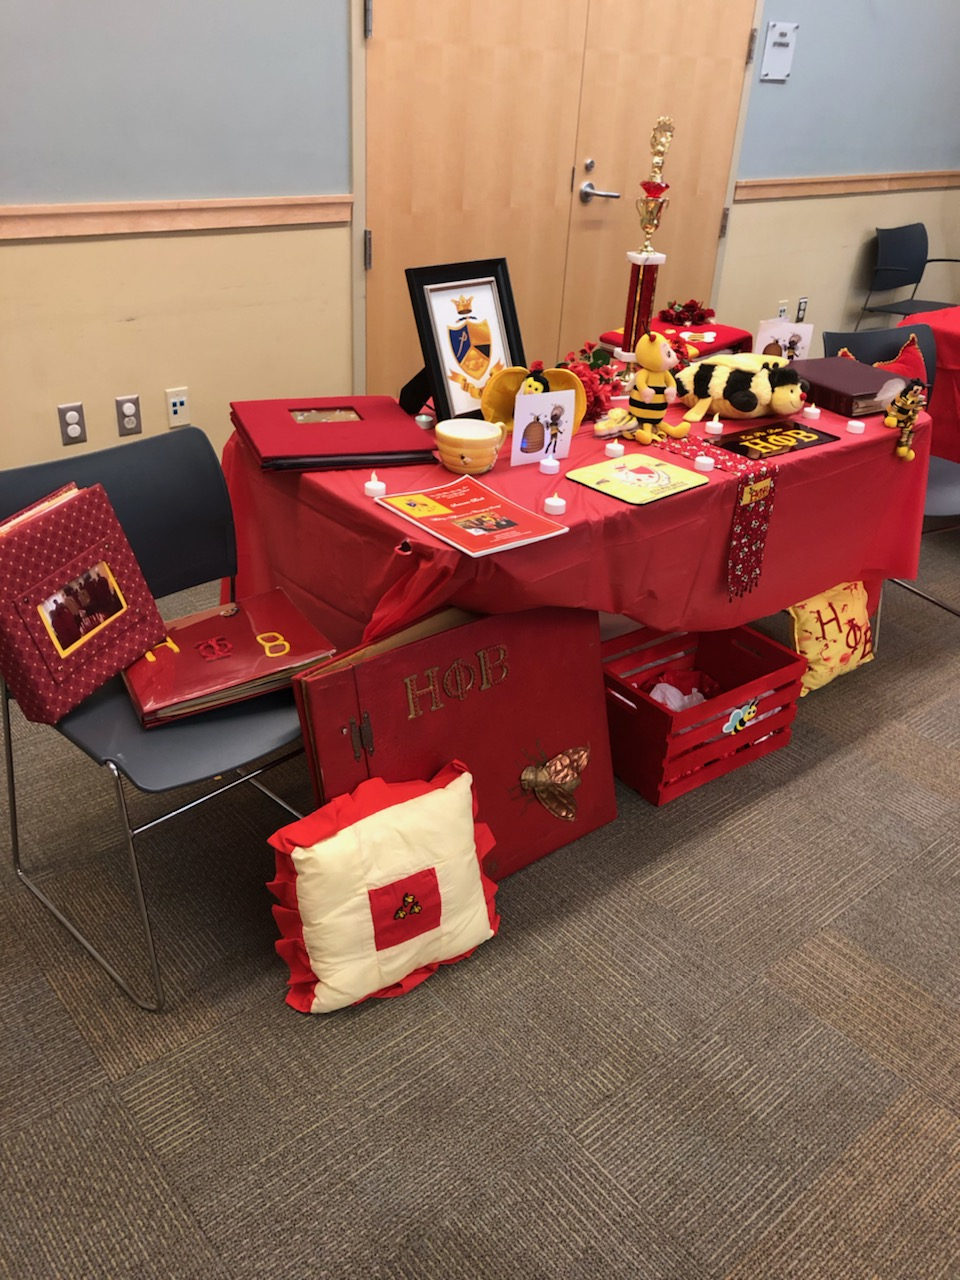 Alpha Theta Chapter's Display Table at the January 2019 Interest Meeting